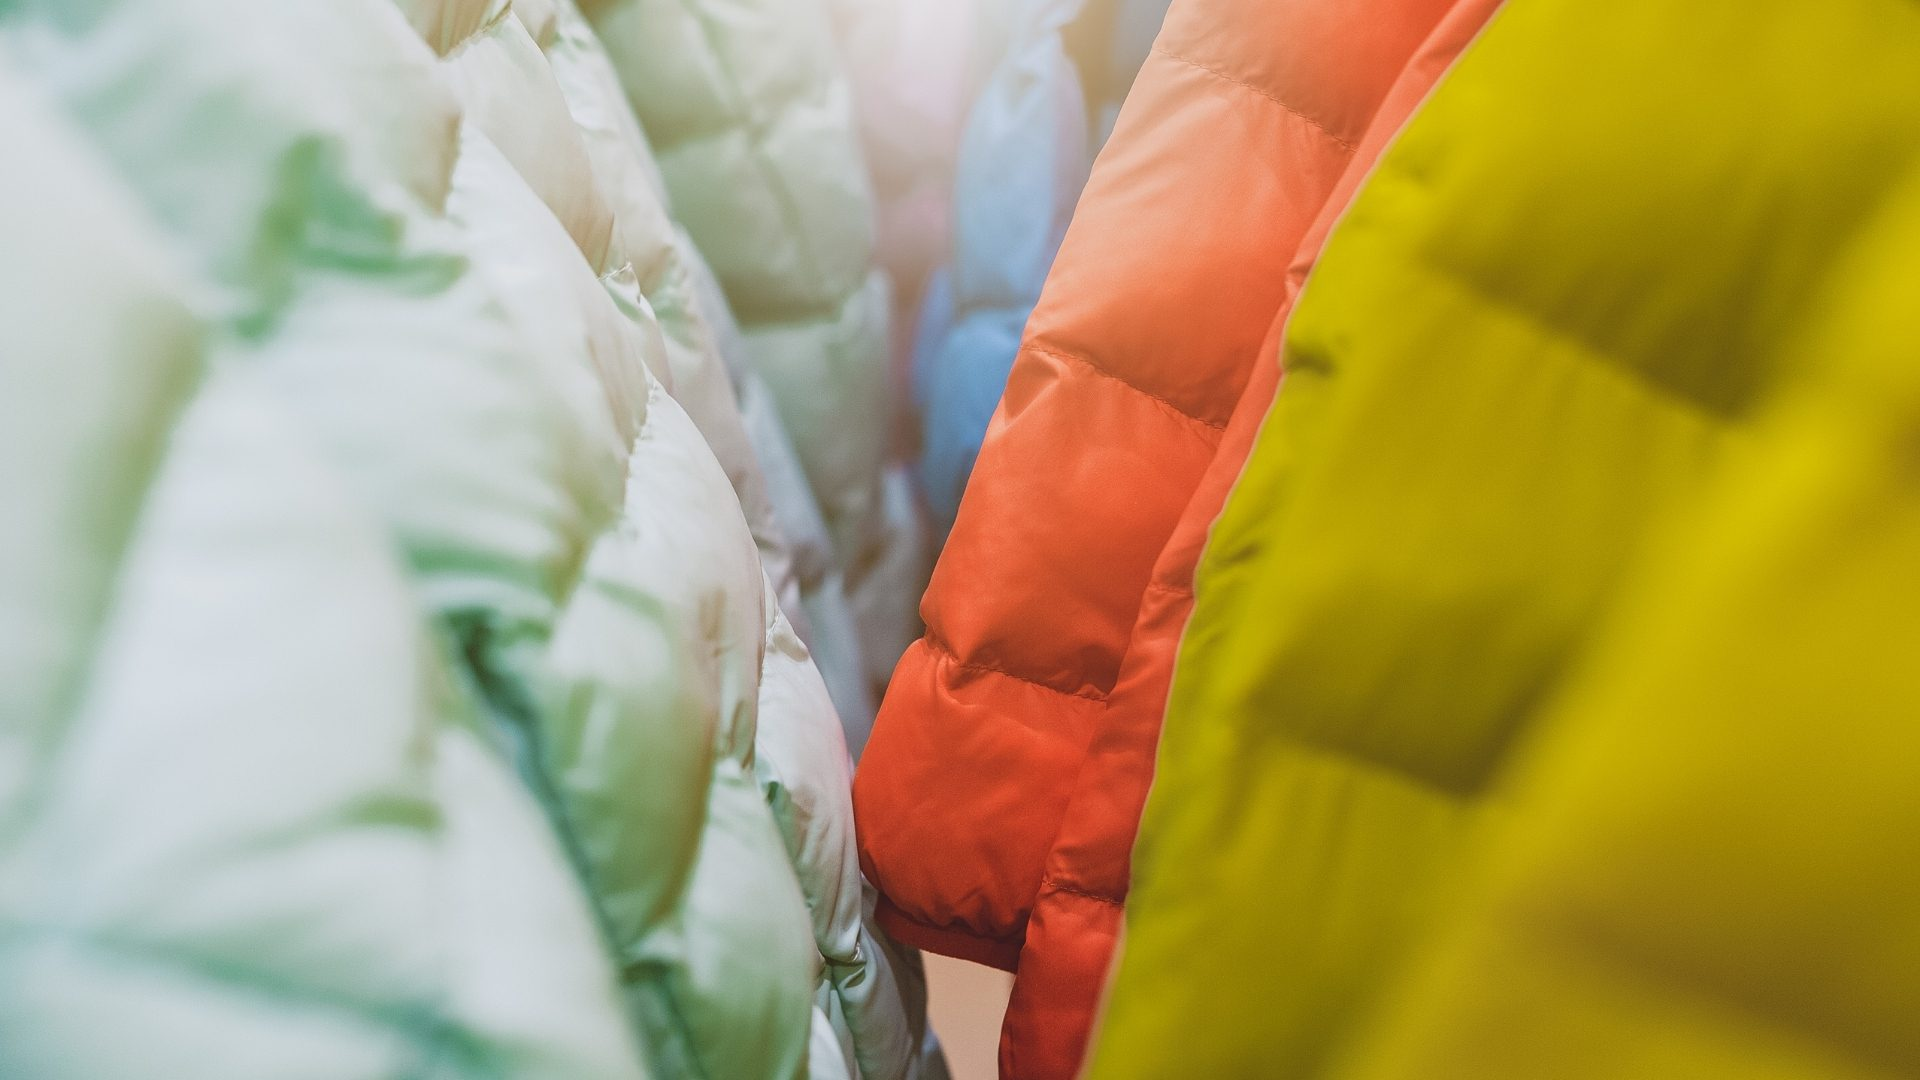 Colorful down and synthetic jackets hanging